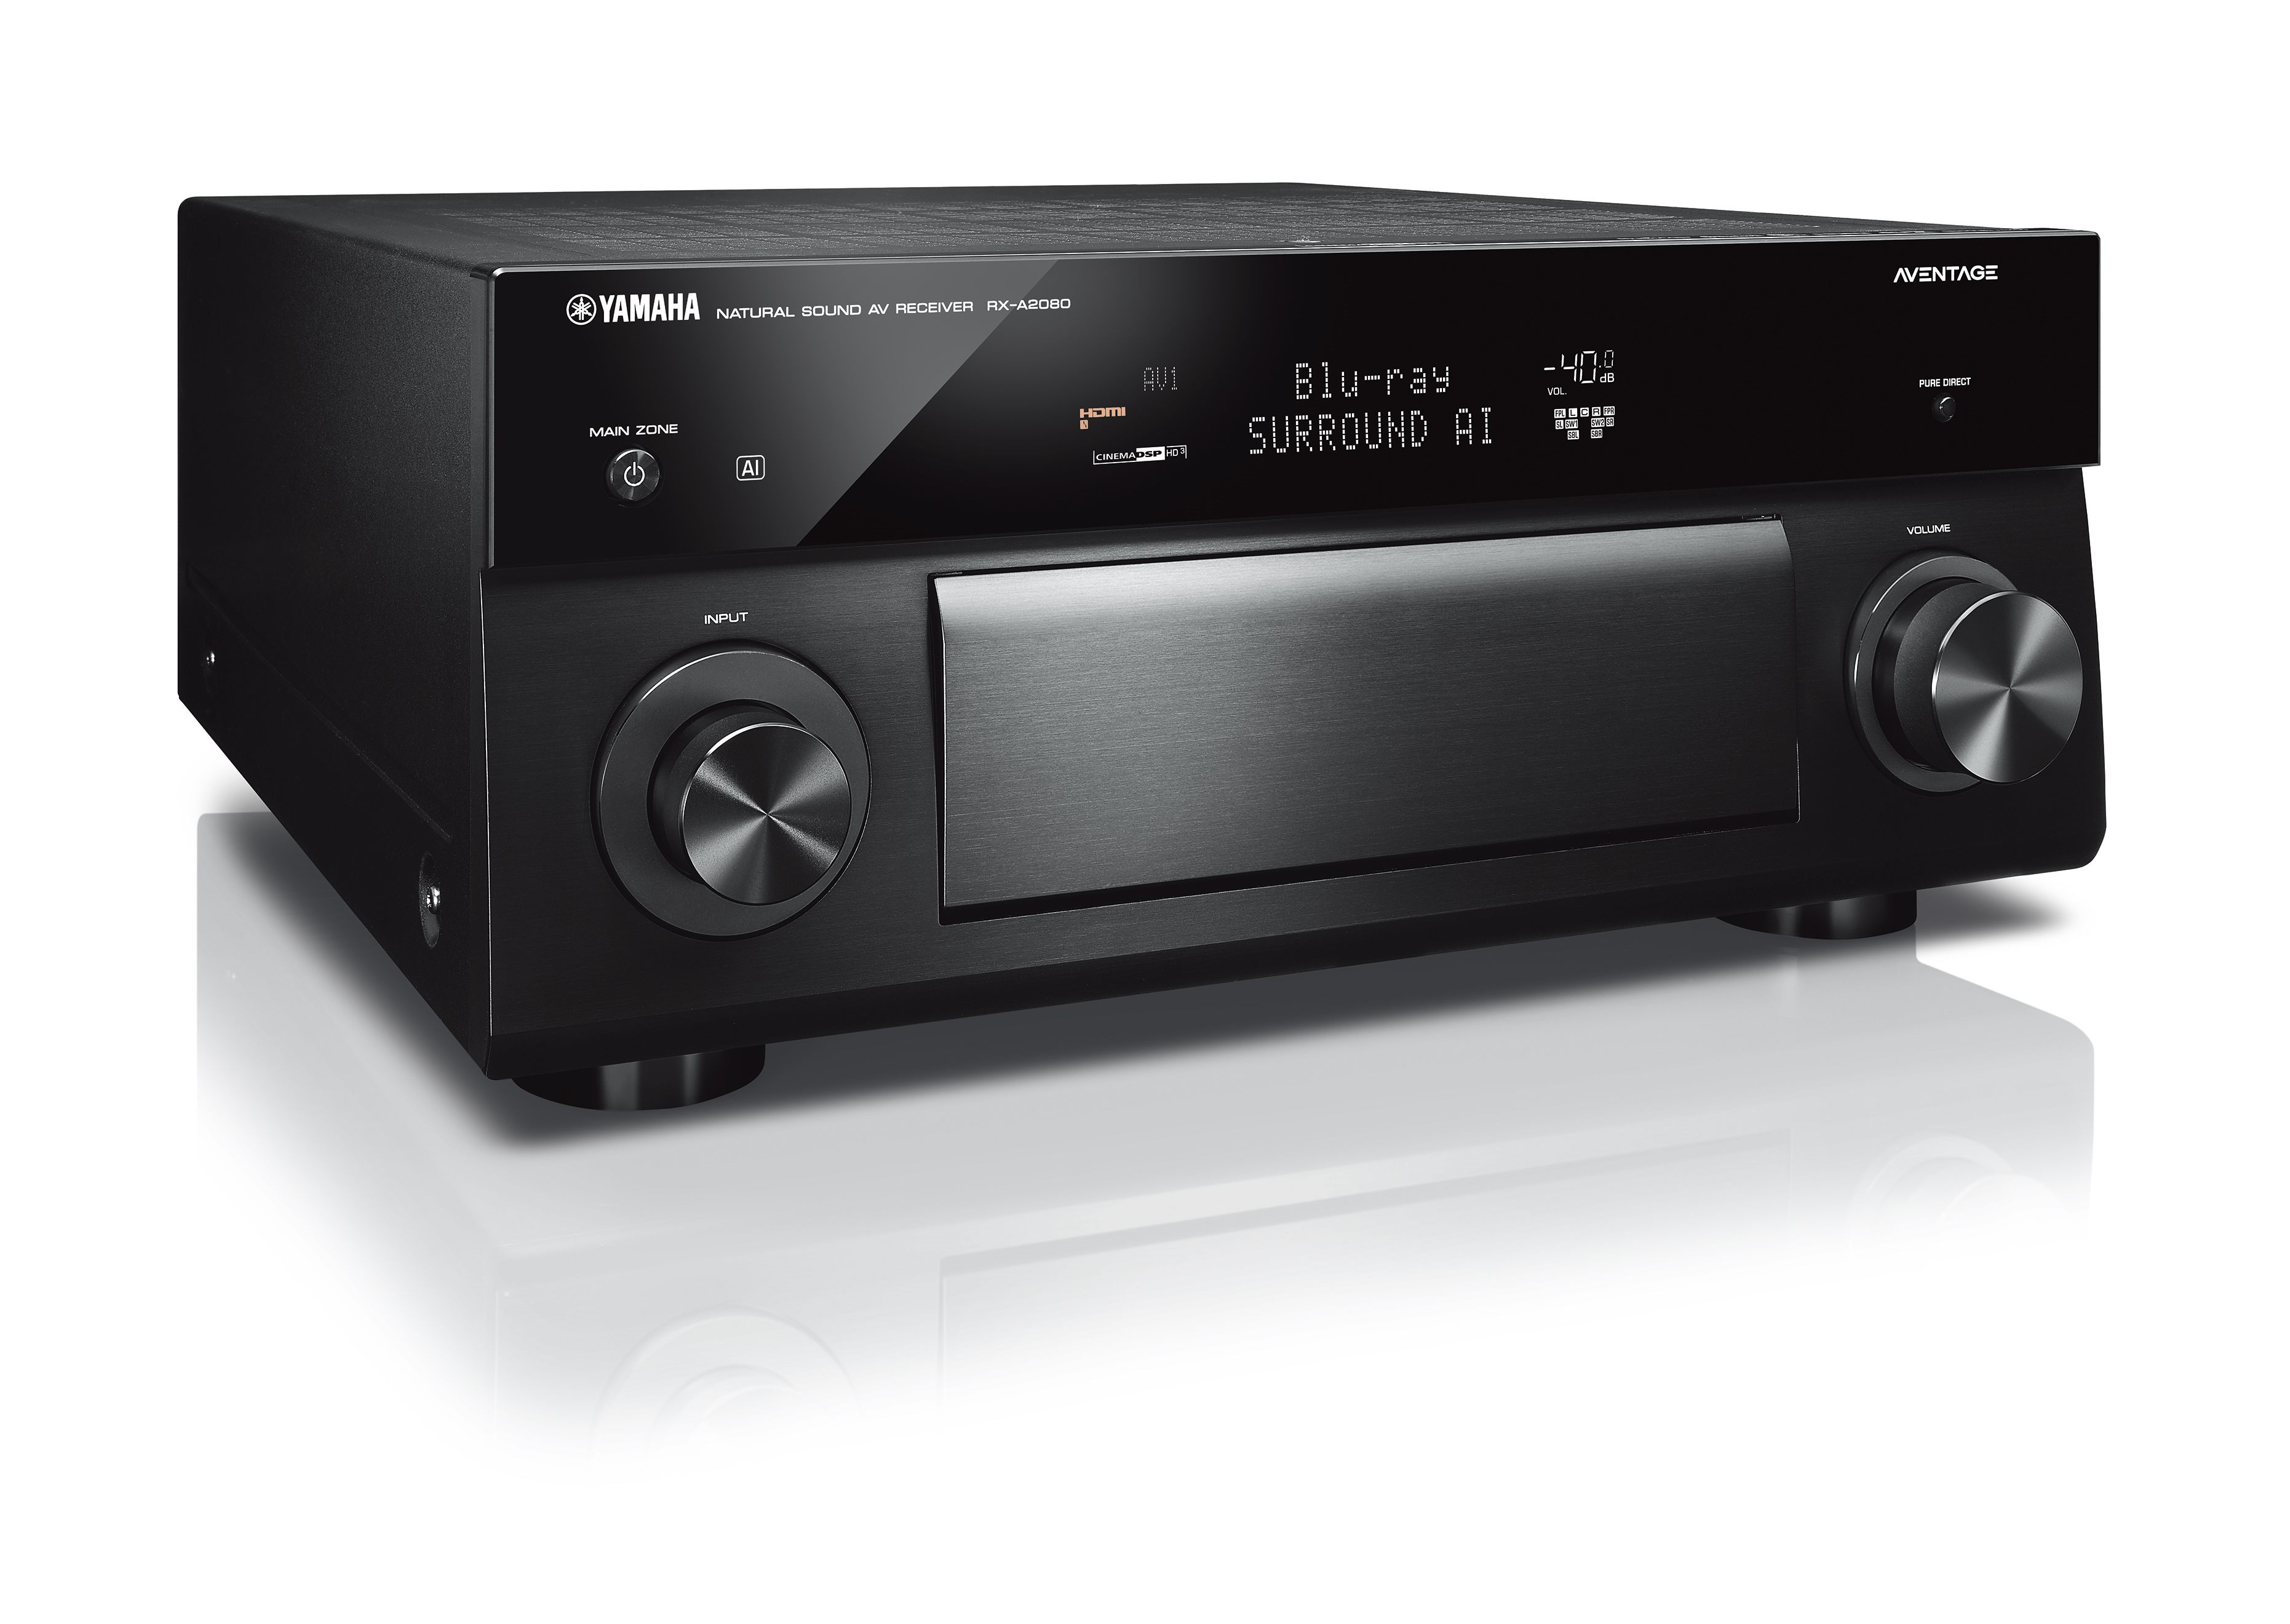 Rx A2080 Up Yamaha Speakers Home Theater On Car Audio Lifier Wiring Diagrams Aventage 92 Channel Av Receiver With Musiccast